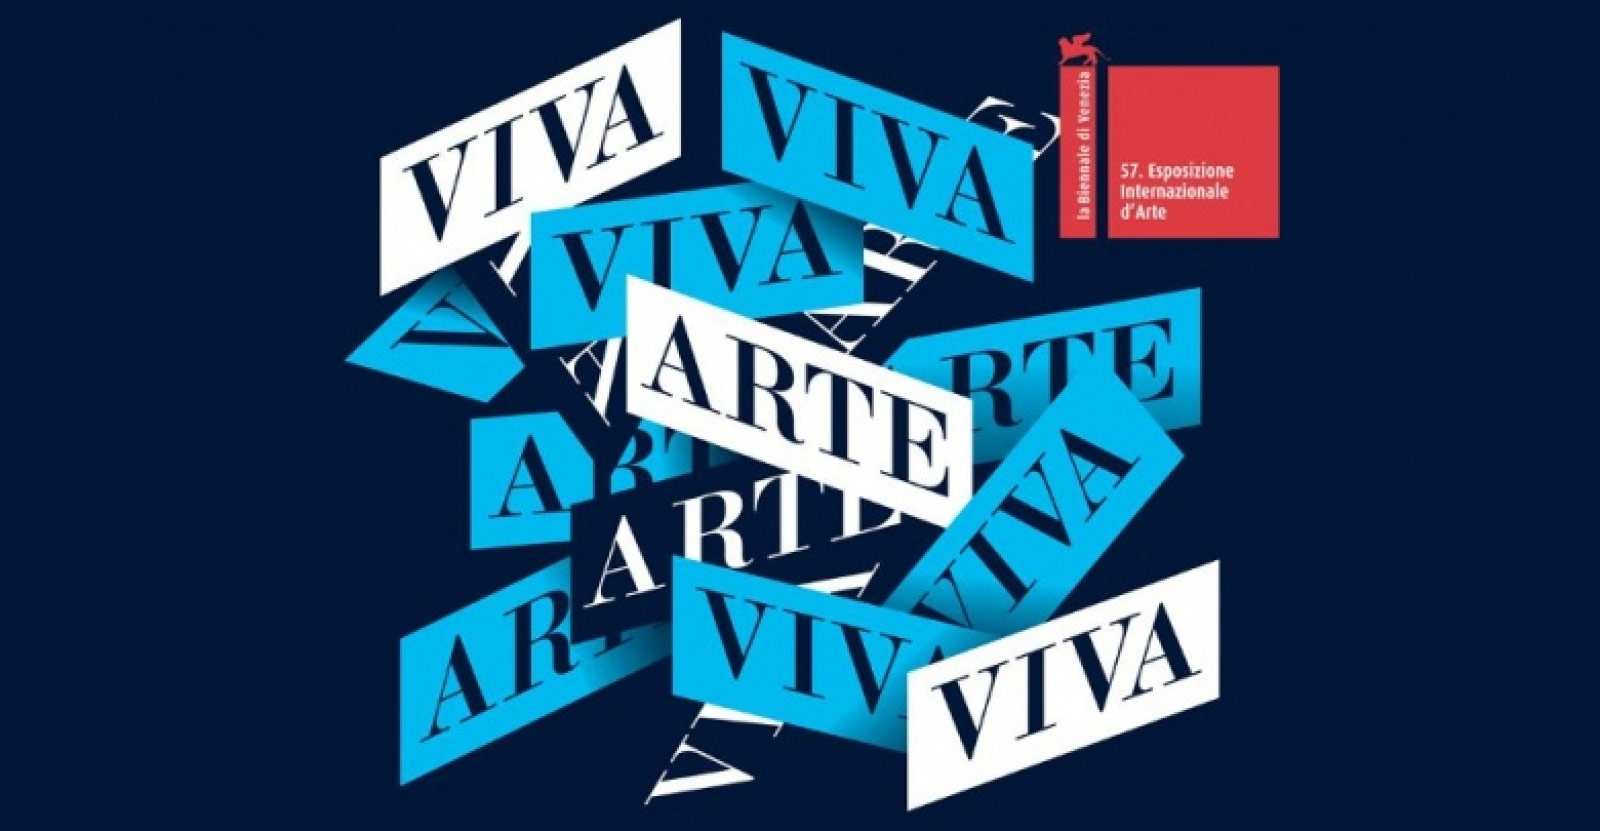 Poster of the 57th International Art Exhibition – Viva Arte Viva